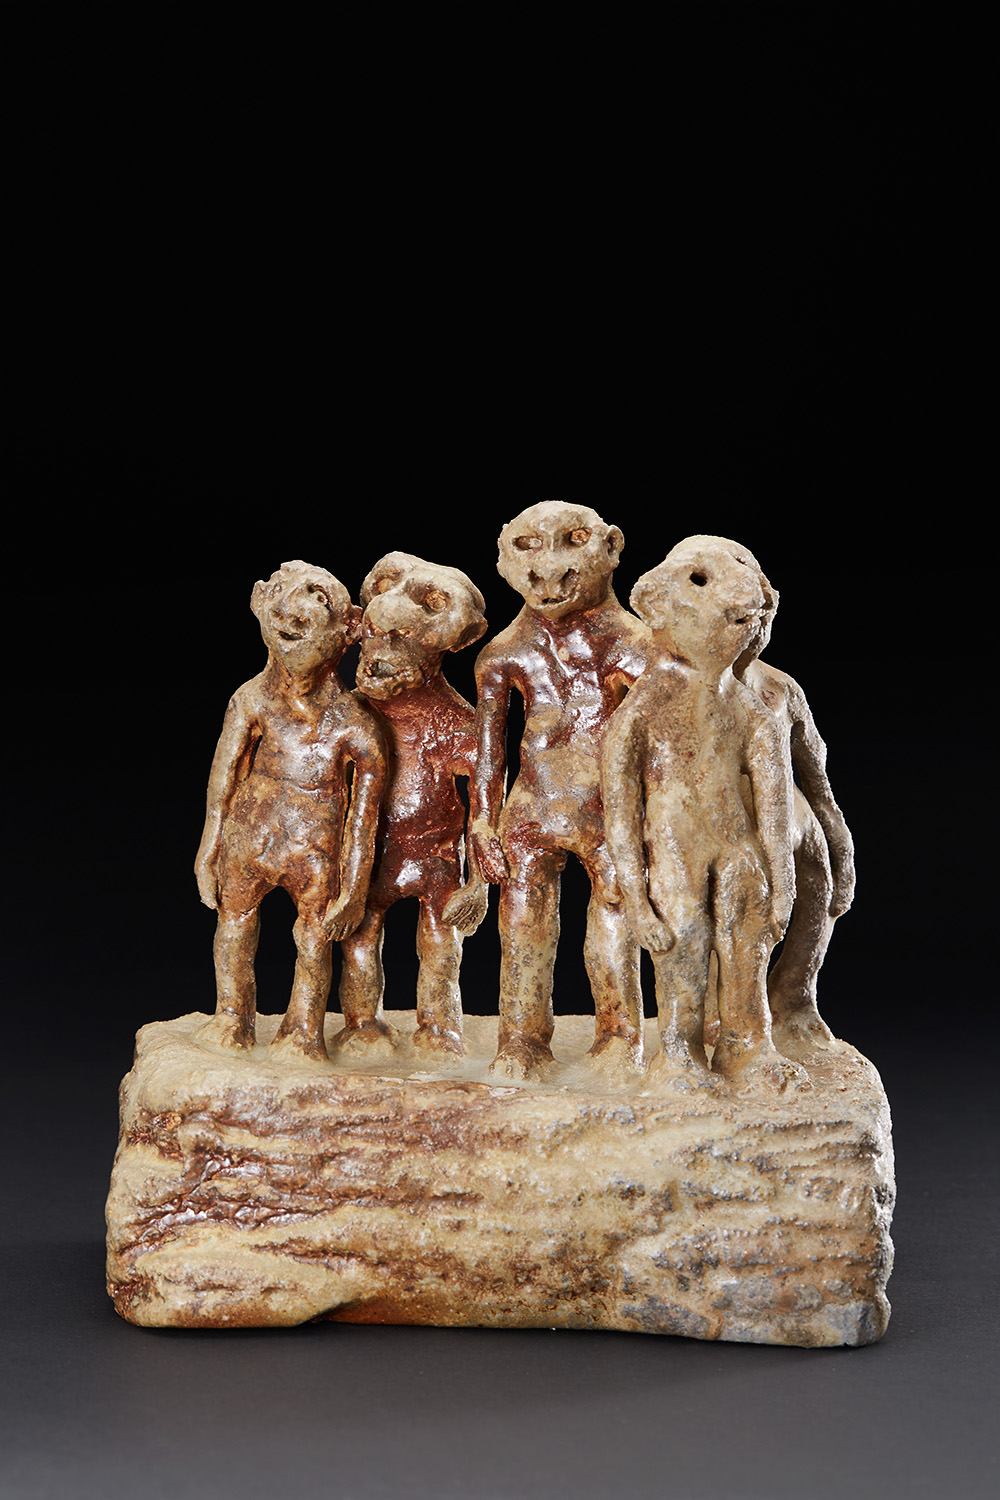 Chrissy Callas    Crowd  , 2013 Ceramic 9.25 x 9 x 6 inches 23.5 x 22.9 x 15.2 cm CCa 31